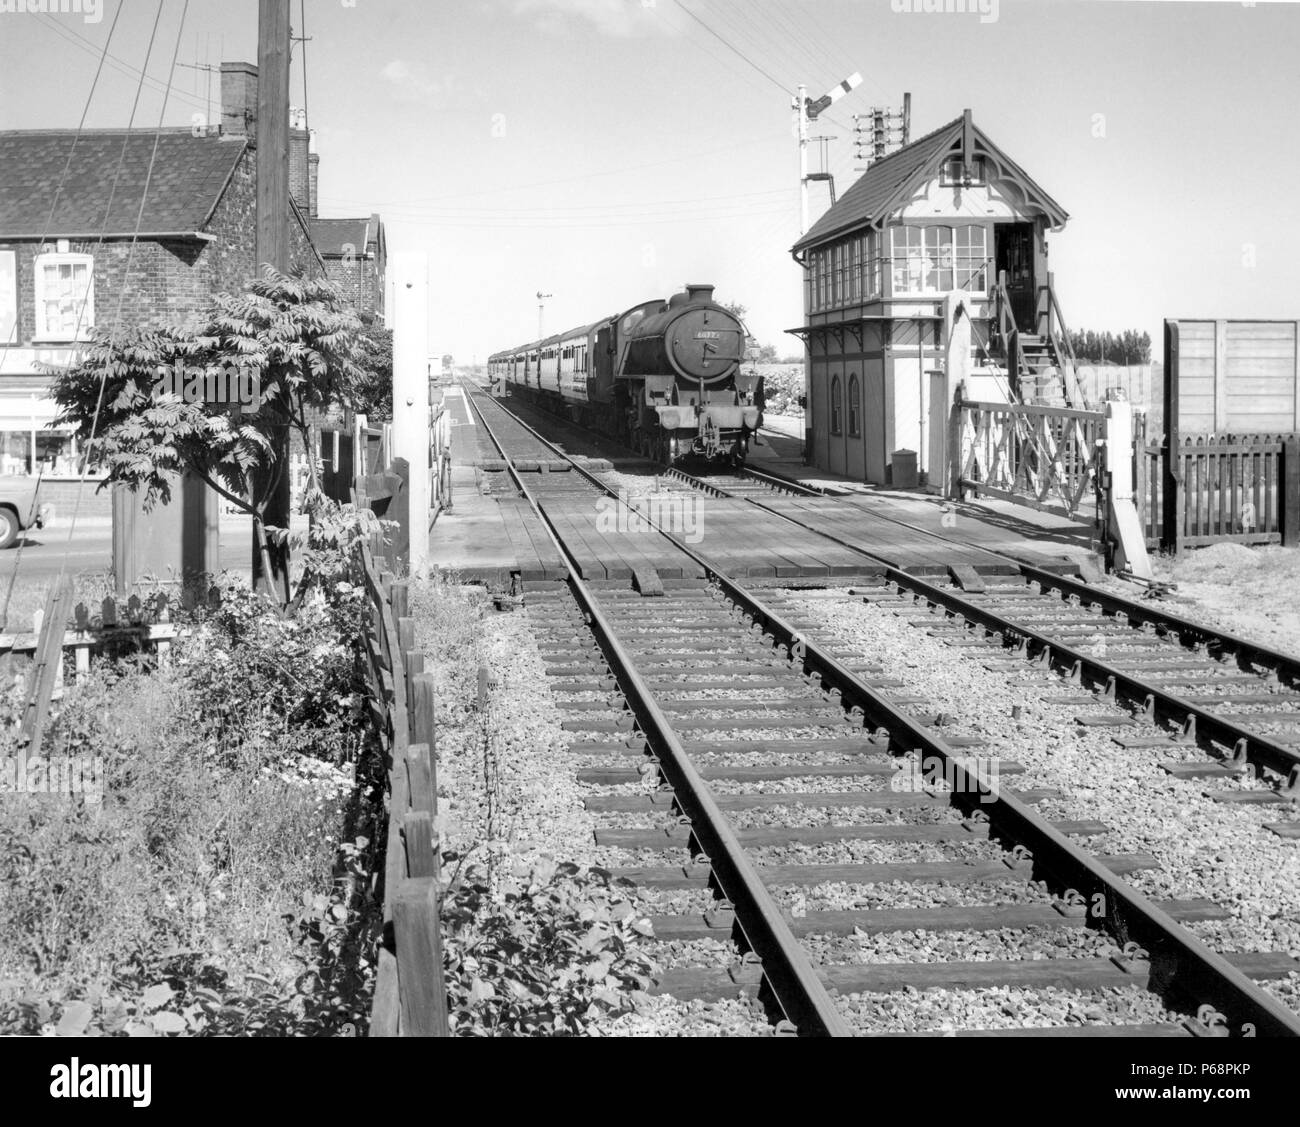 Thompson Class B1 at the head of a passenger train passes a signal box and level crossing at an unknown location in the east of England. C 1960 - Stock Image